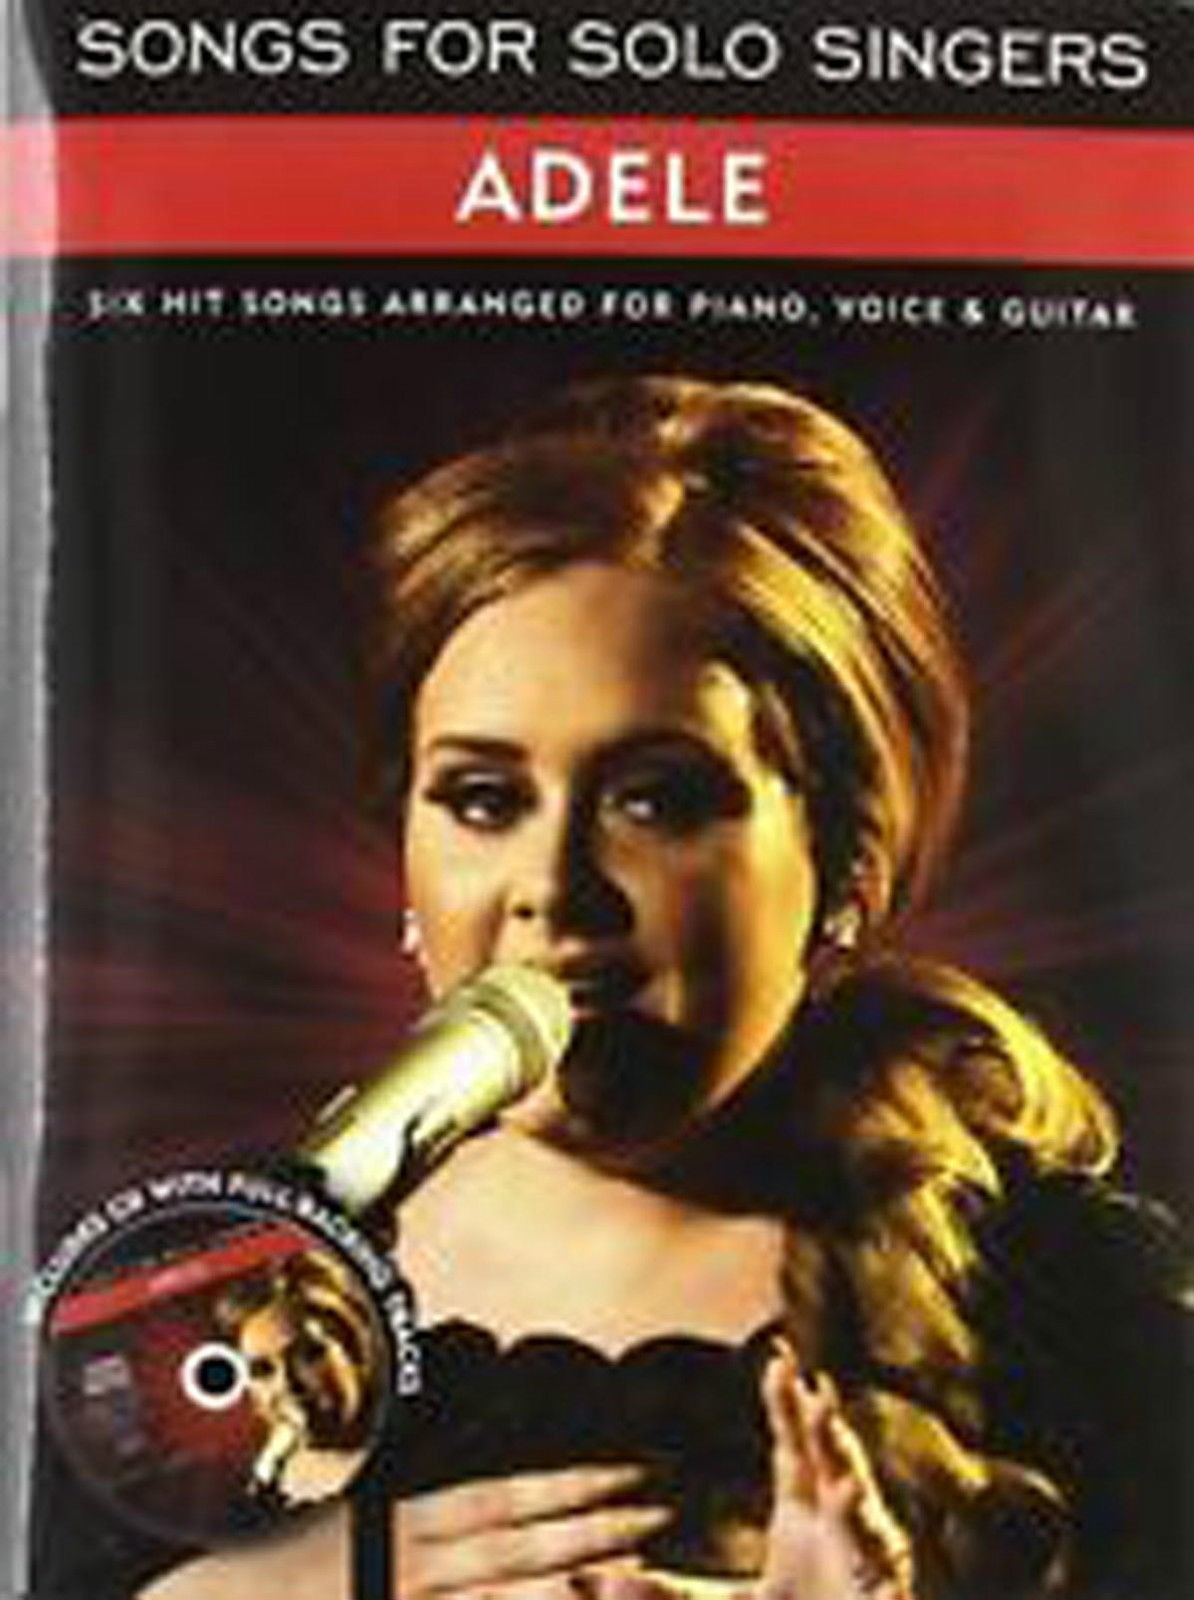 Songs For Solo Singers Adele Piano Voice Guitar Book CD B23